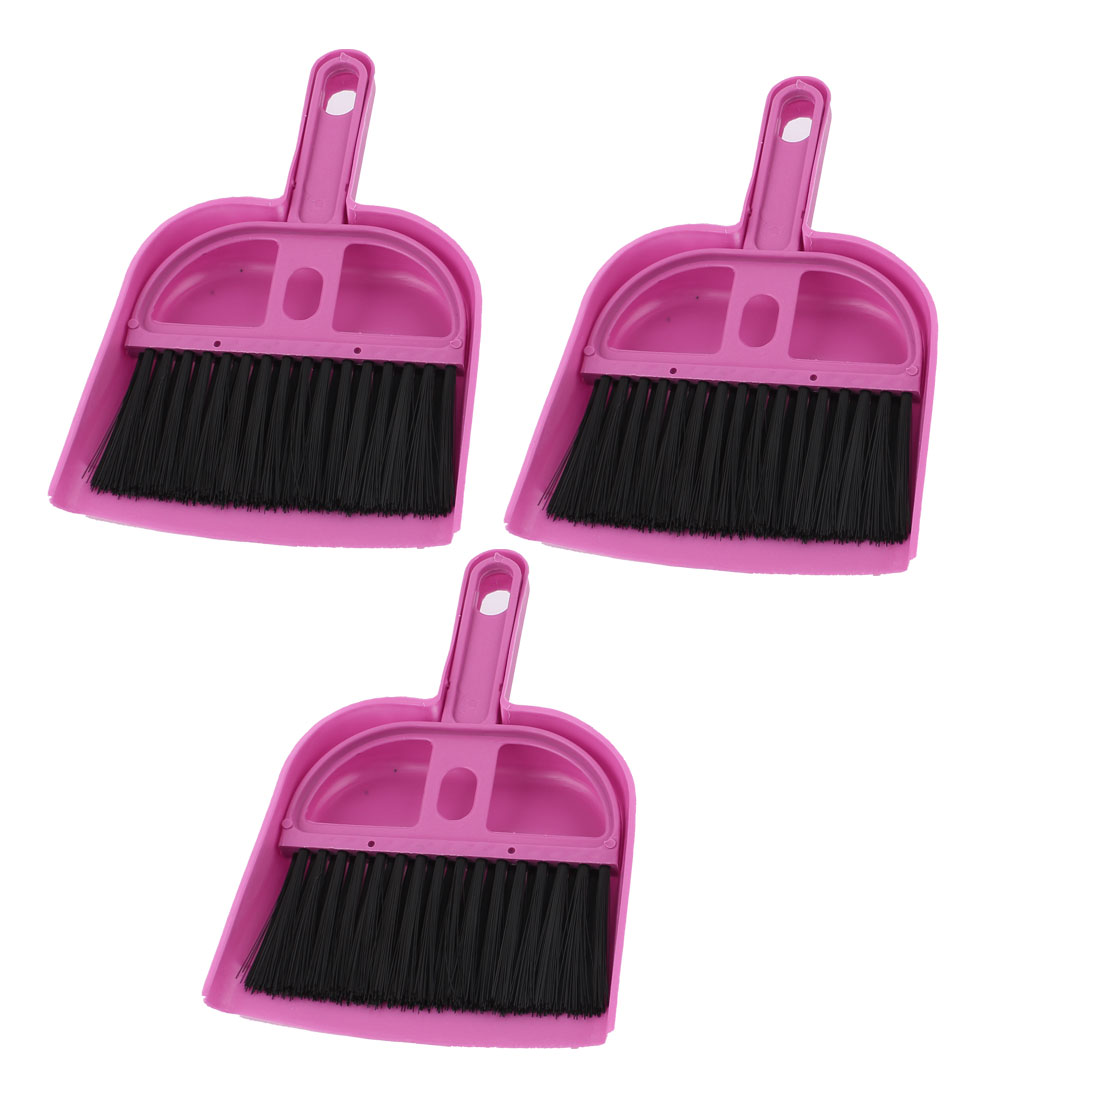 3 Pcs Portable PC Desk Computer Keyboard Duster Cleaning Cleaner Brush Pink